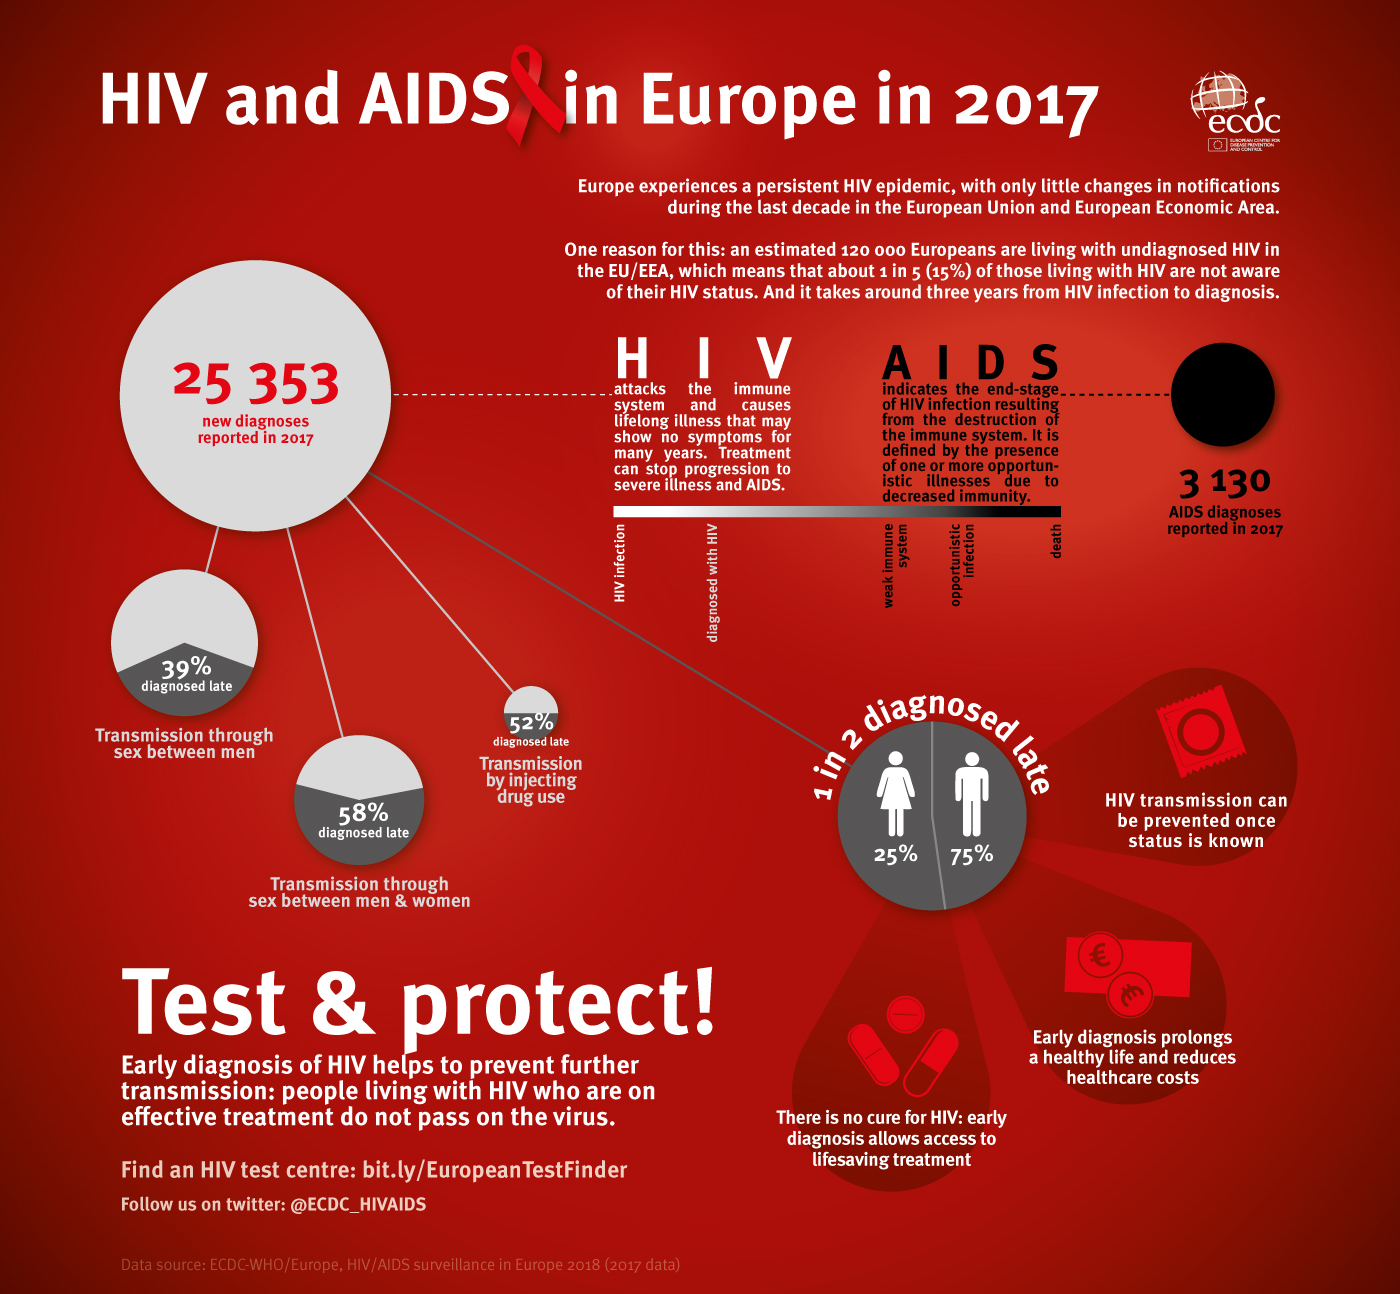 infographic: hiv and aids in europe 2017